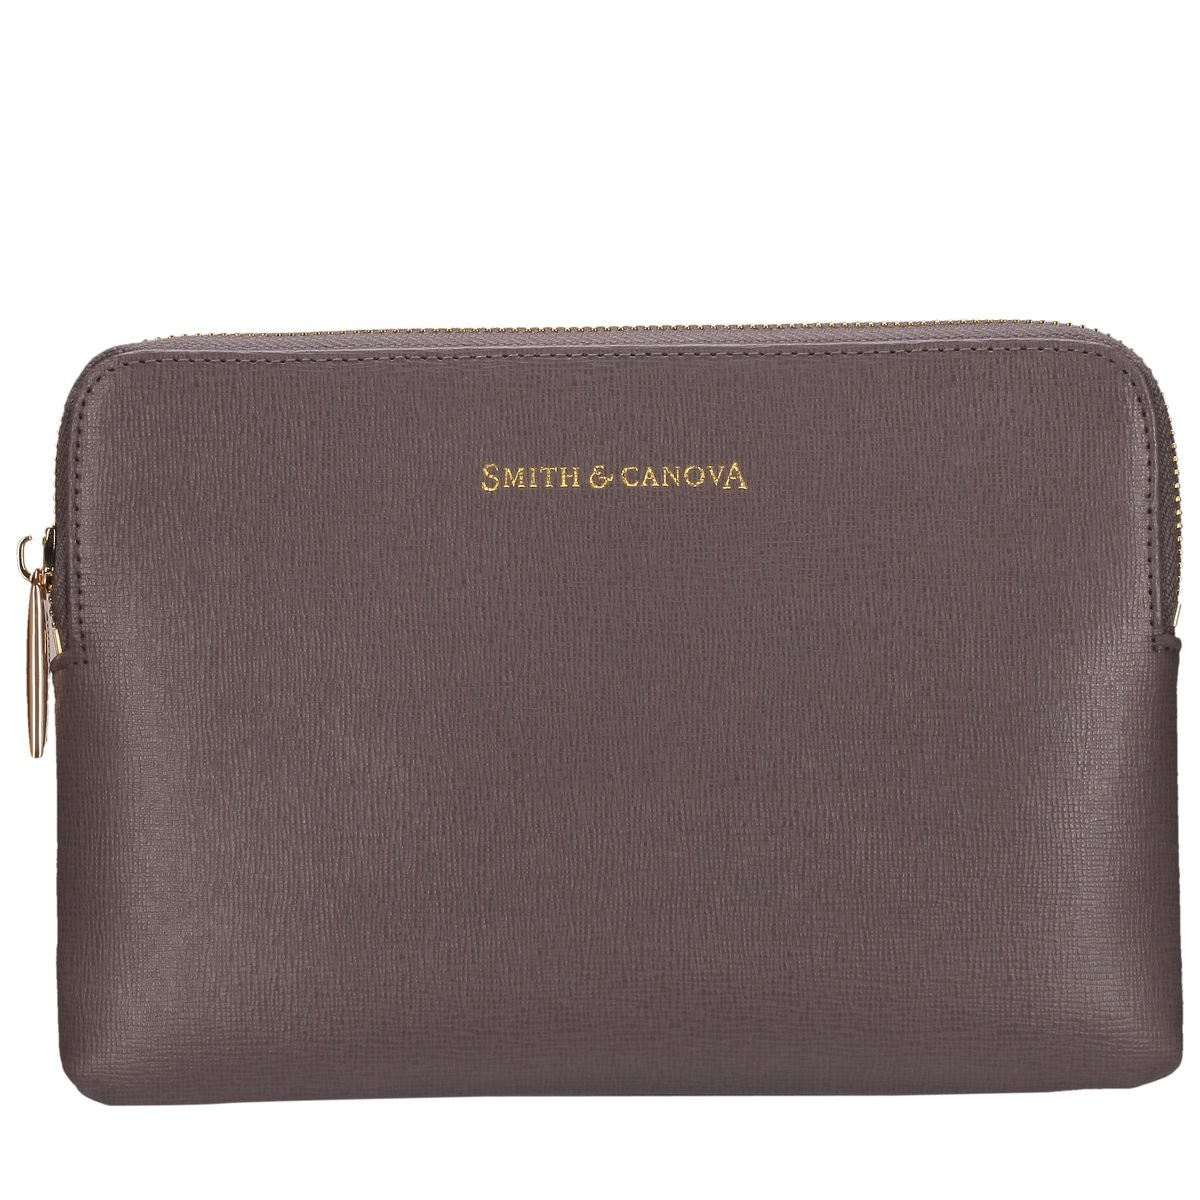 outlet store 55db8 2eaa5 Saffiano Leather Zip Top Kindle Cover